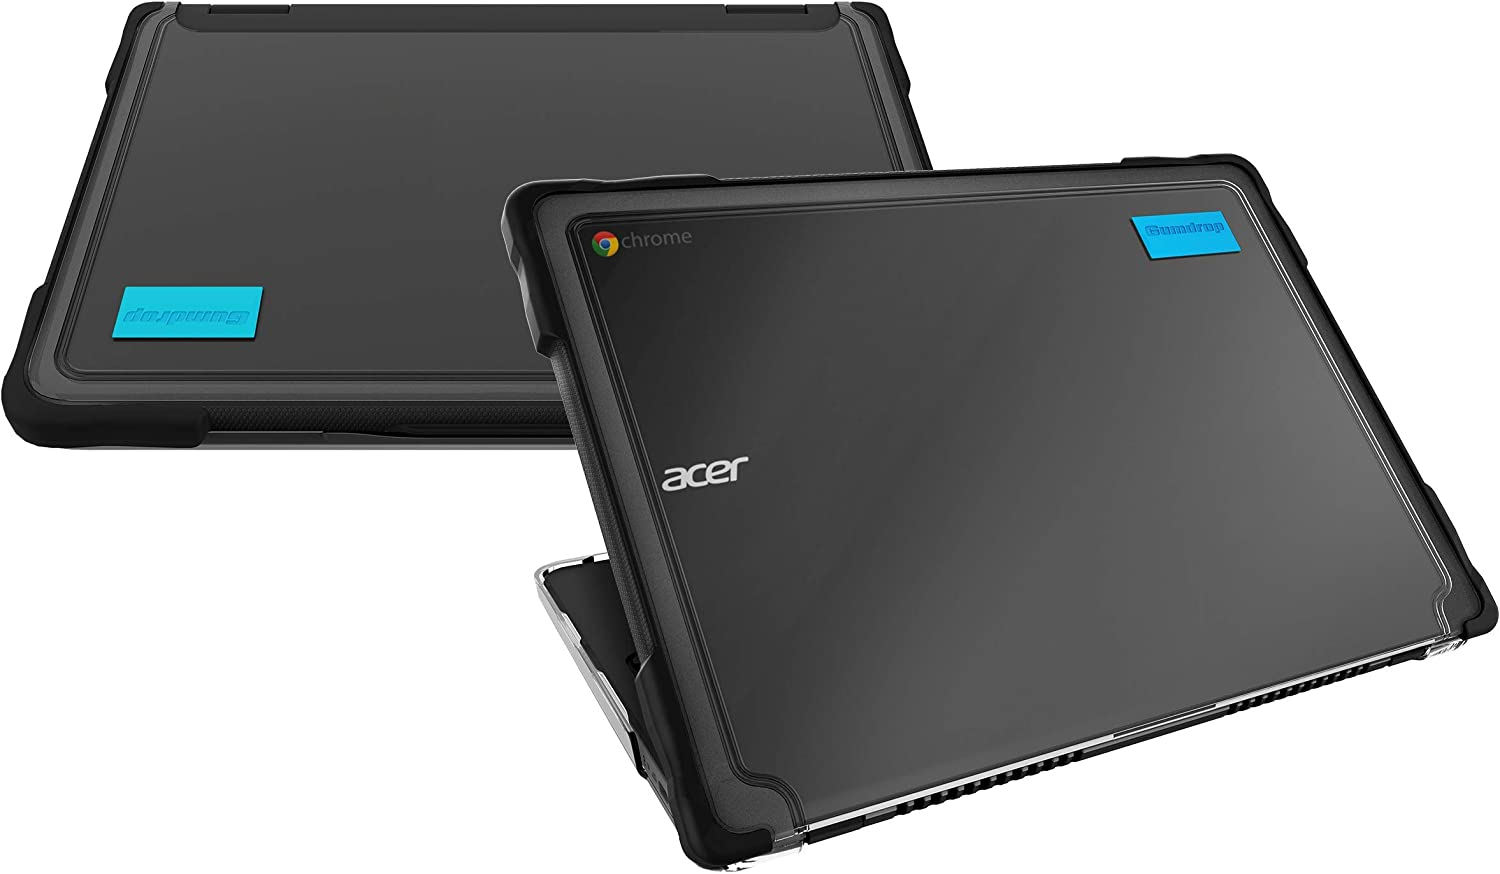 Gumdrop SlimTech Case Designed for Acer Chromebook 712 (C871) Laptop for Students, Education, Kids, School - Slim, Lightweight, Protection from Bumps and Scratches